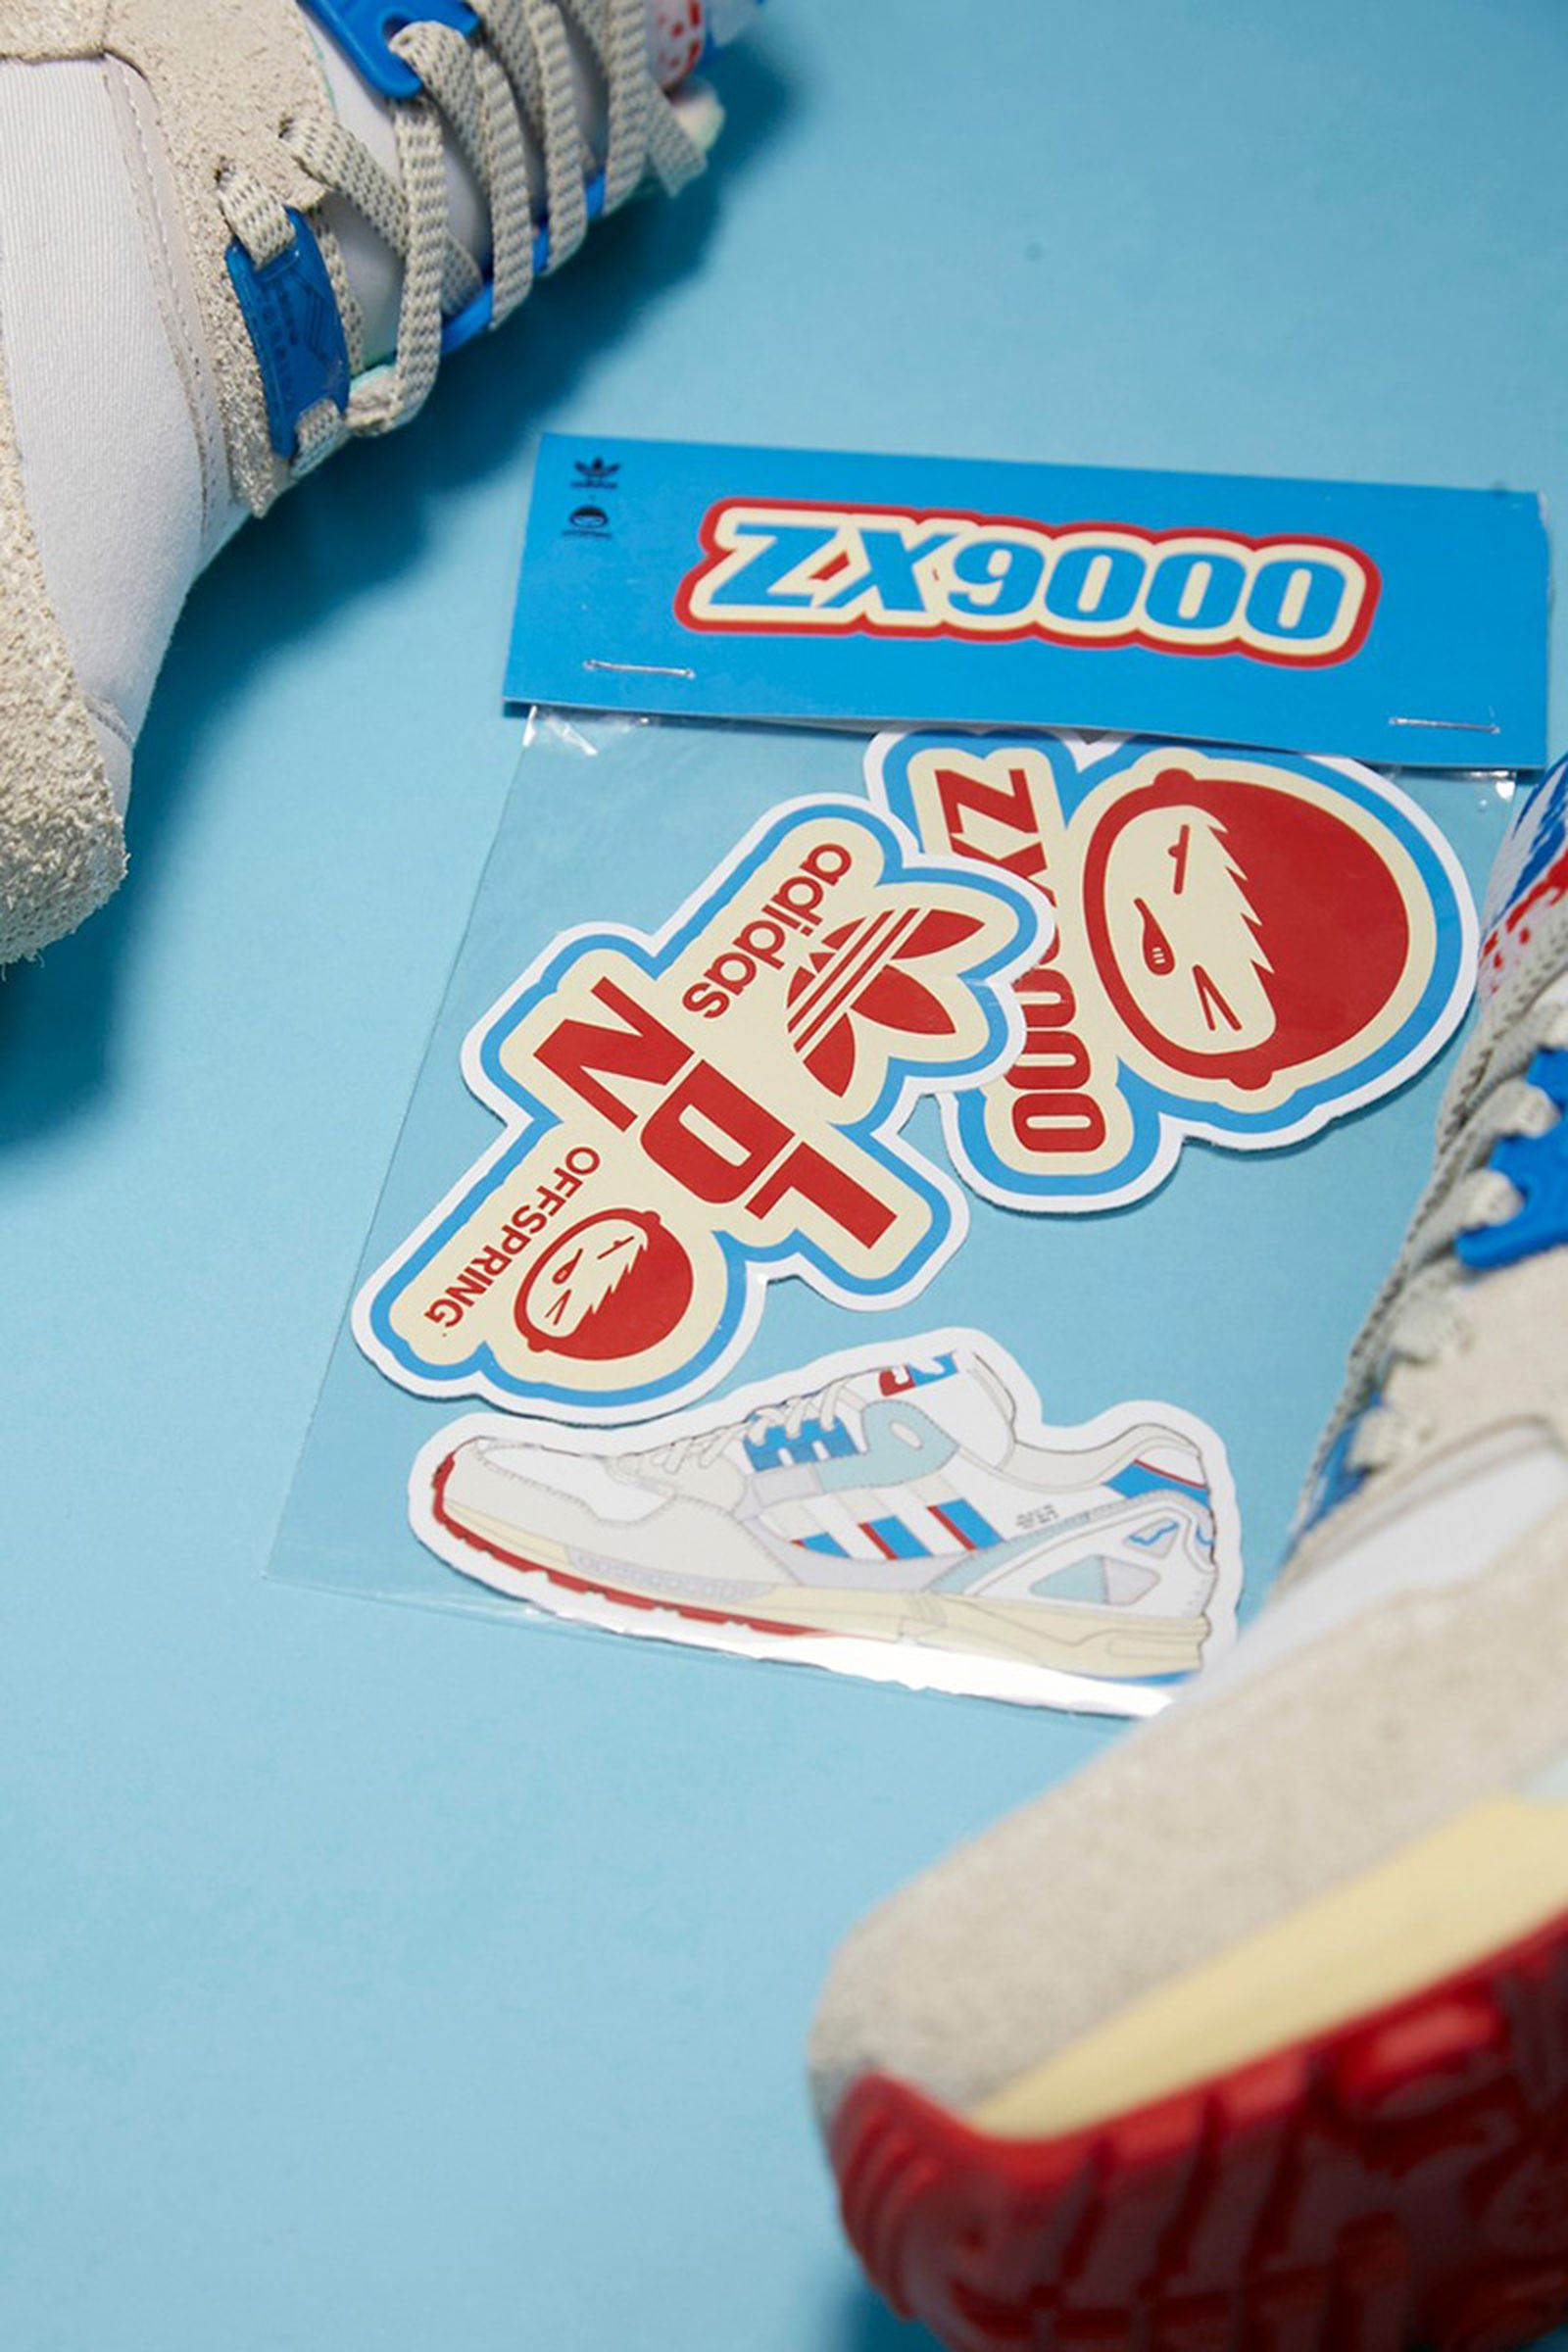 offspring-adidas-zx-9000-london-release-date-price-11